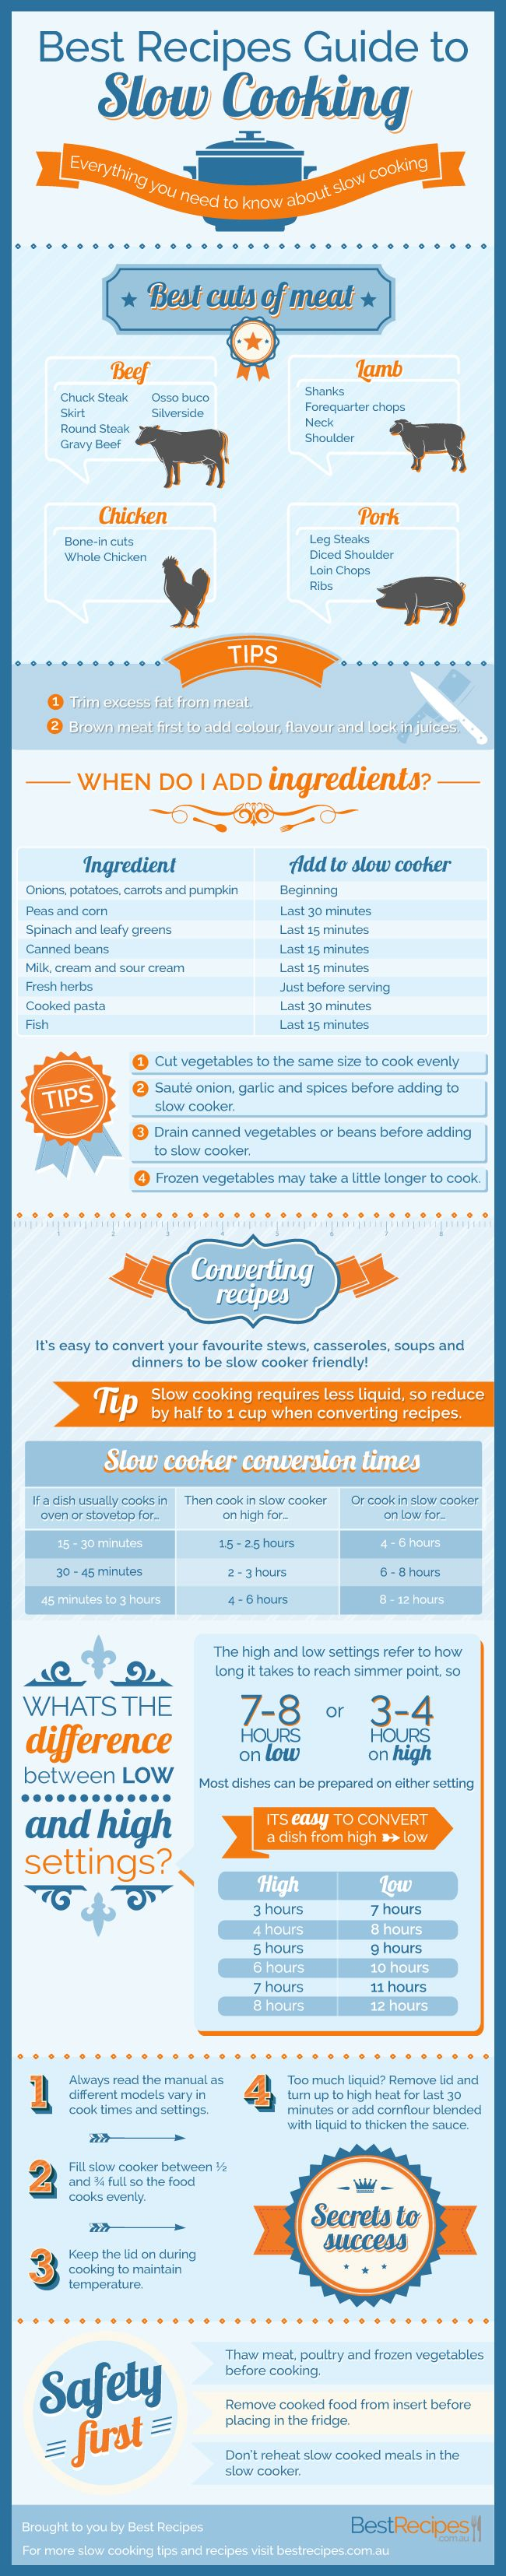 Best Recipes Guide to Slow Cooking [INFOGRAPHIC] - Everything you need to know about slow cooking in one handy infographic! #slowcooker #crockpot